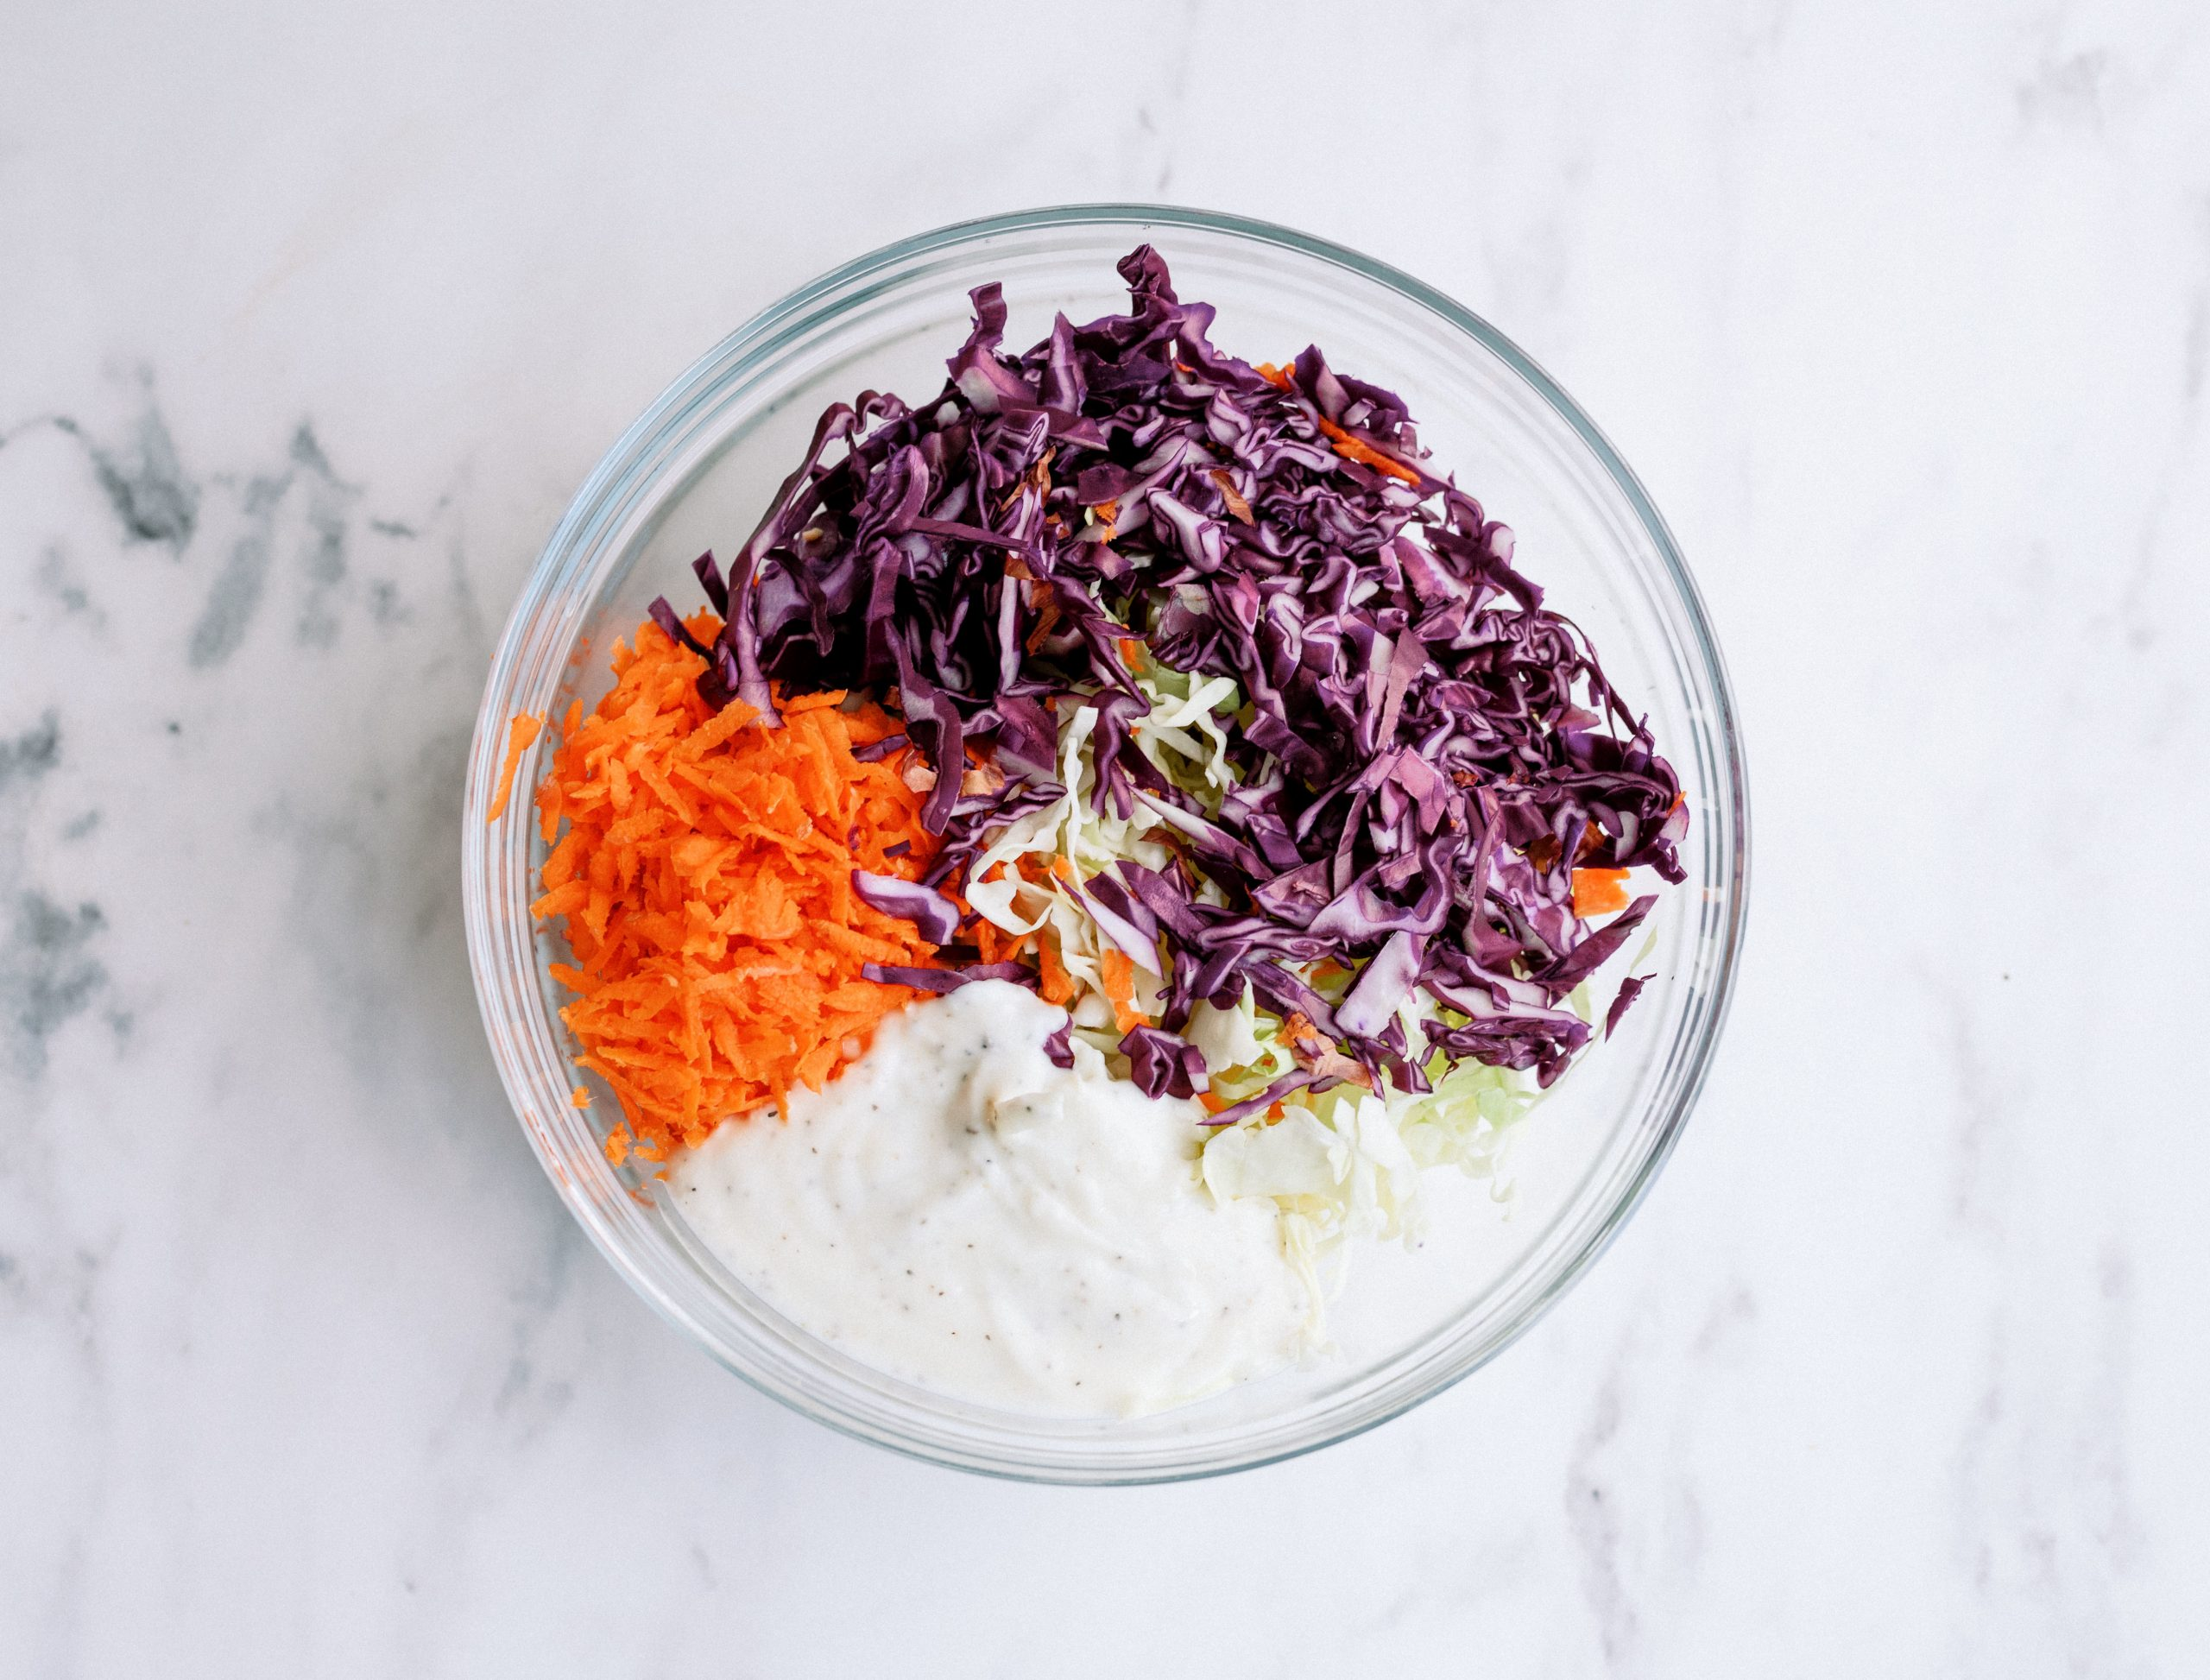 bbq chicken taco coleslaw ingredients in a bowl before mixing